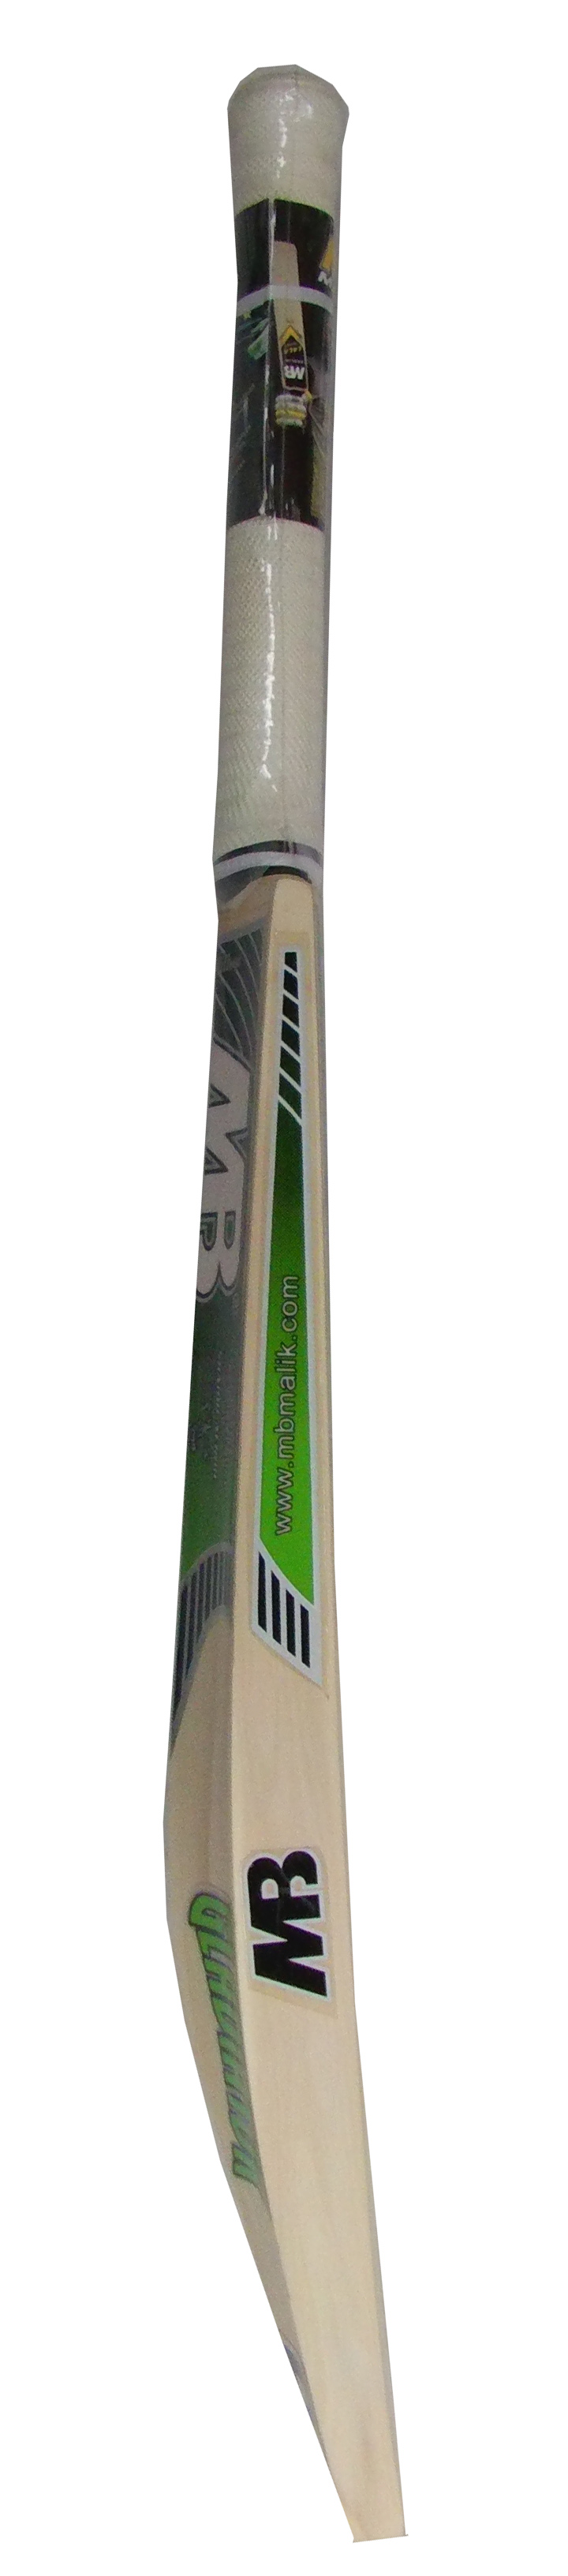 MB Malik Gladiator English Willow Cricket Bat LH Weight 2.9 Lbs